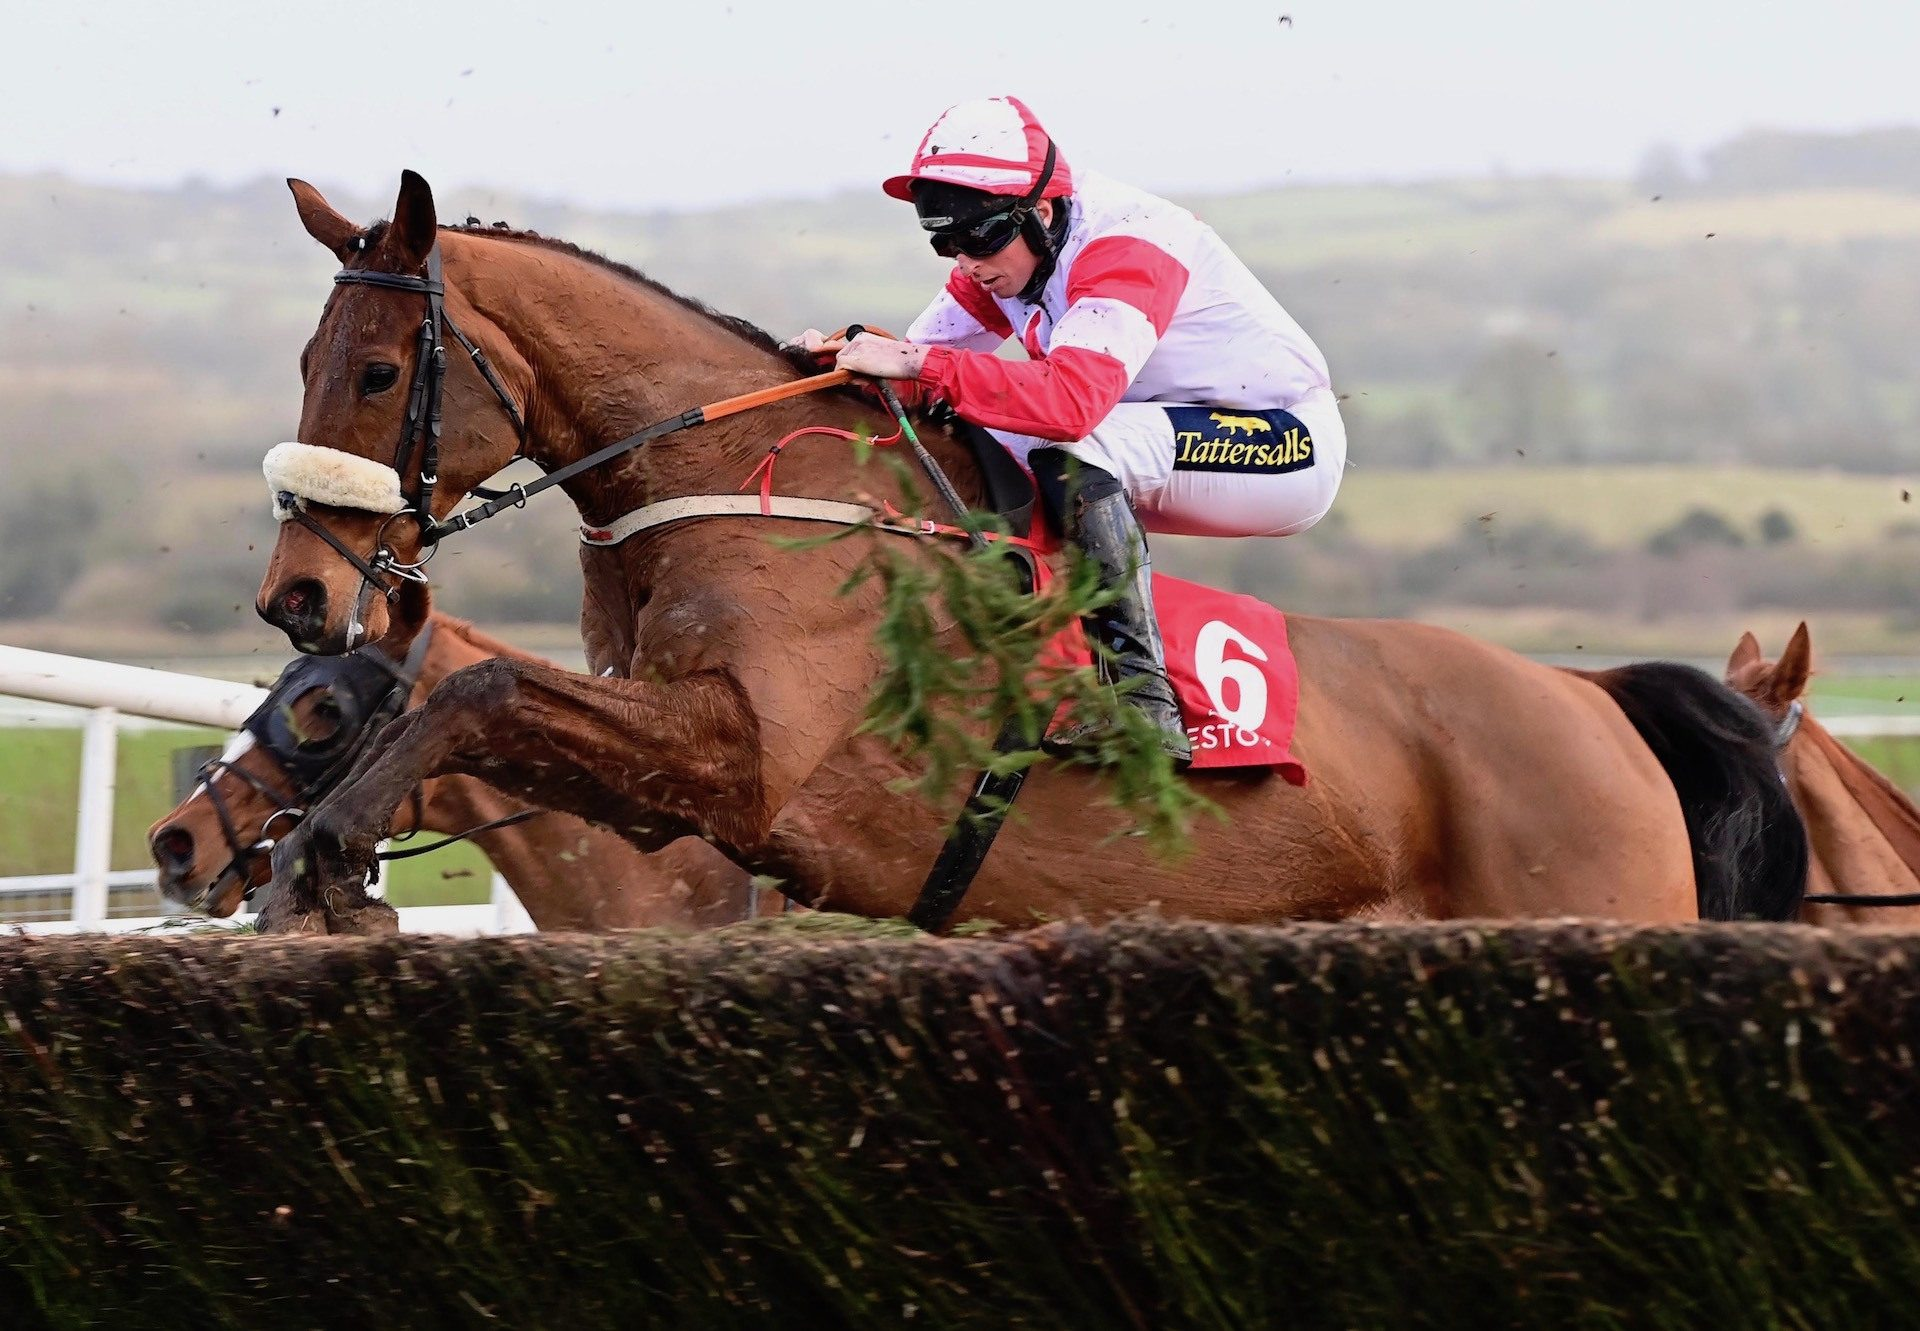 The Big Dog (Mahler) Wins The Punchestown Grand National Trial